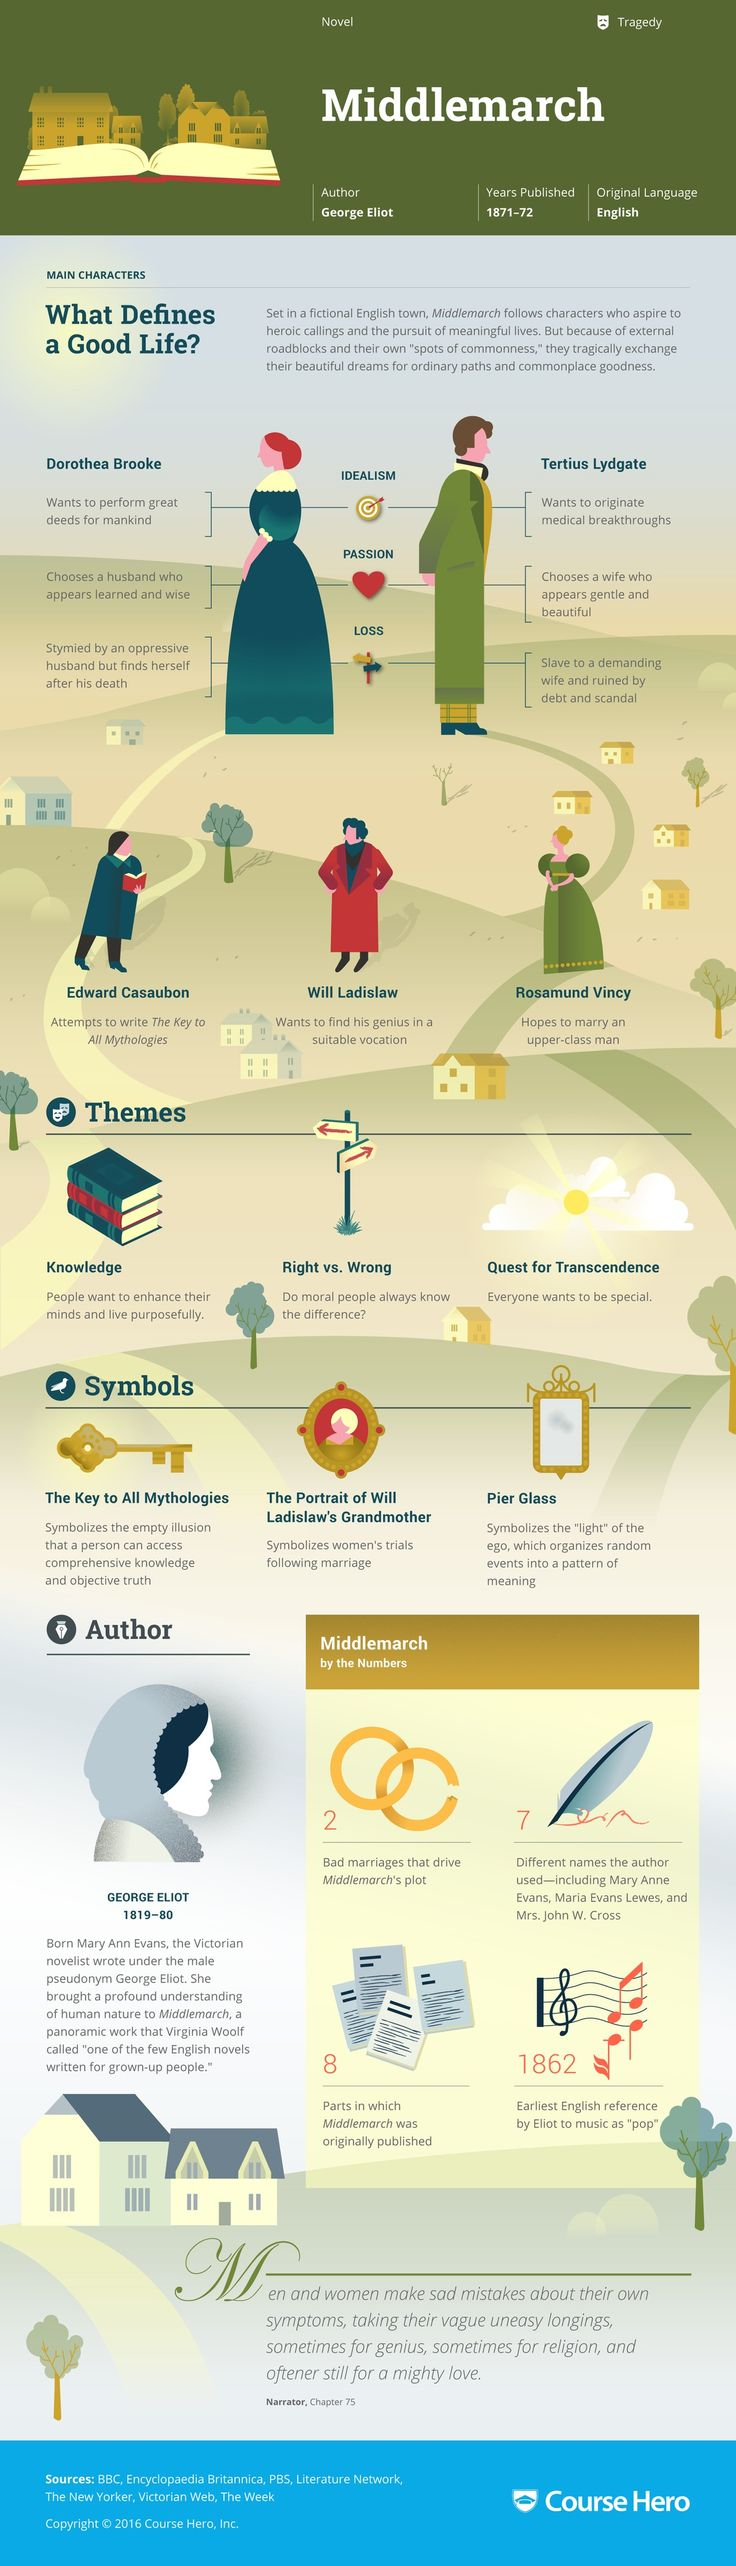 best images about sve literature infographics study guide for george eliot s middle including chapter summary character analysis and more learn all about middle ask questions and get the